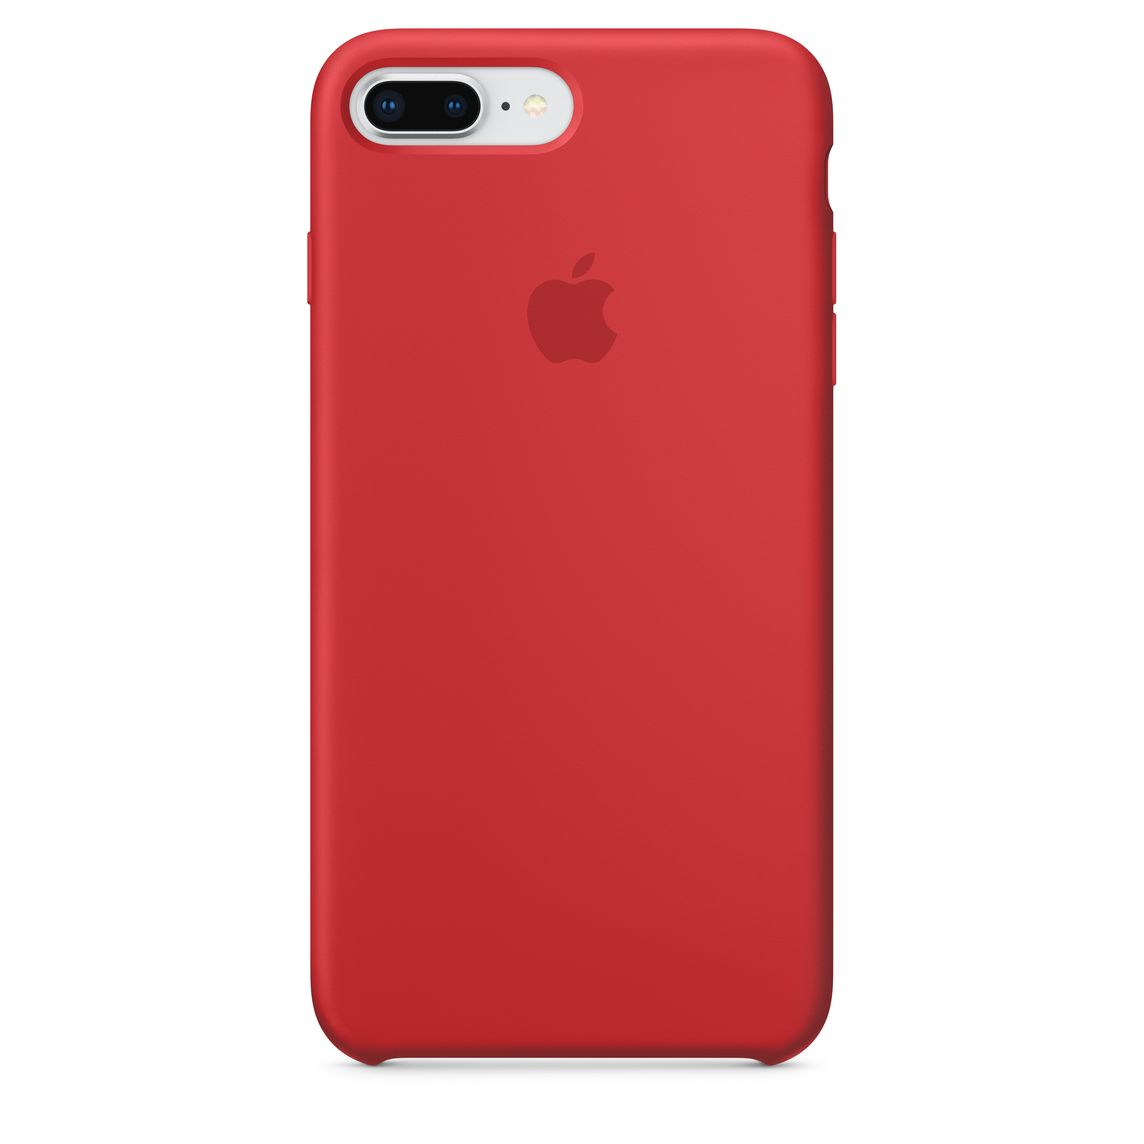 sports shoes 7ac2b 5cbe9 iPhone 8 Plus / 7 Plus Silicone Case - (PRODUCT)RED